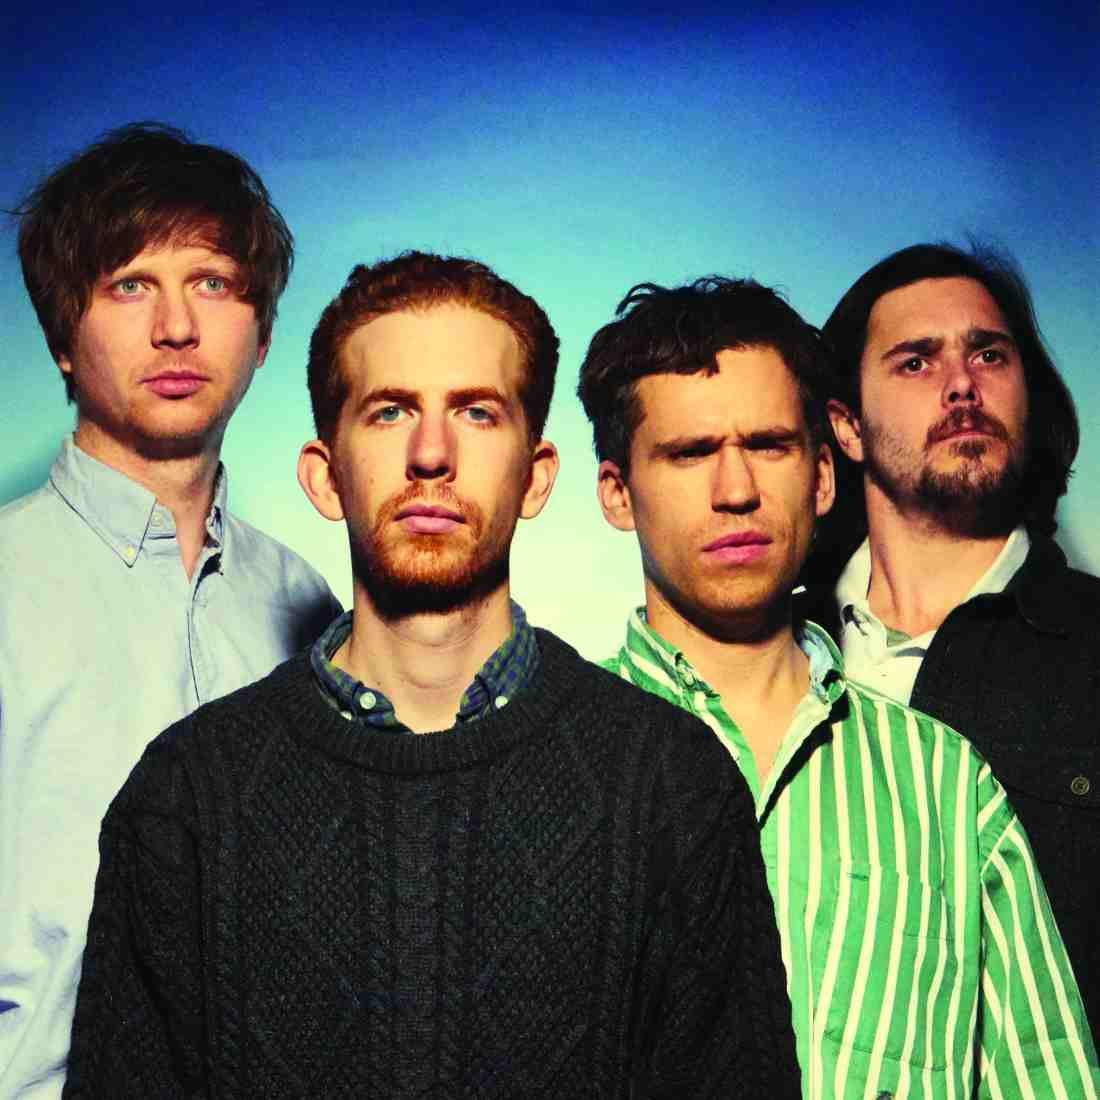 The band face the camera head on and look into the lens with blank or confused expressions. The background fades from a navy blue around the edges into a mint green at the centre of the image.